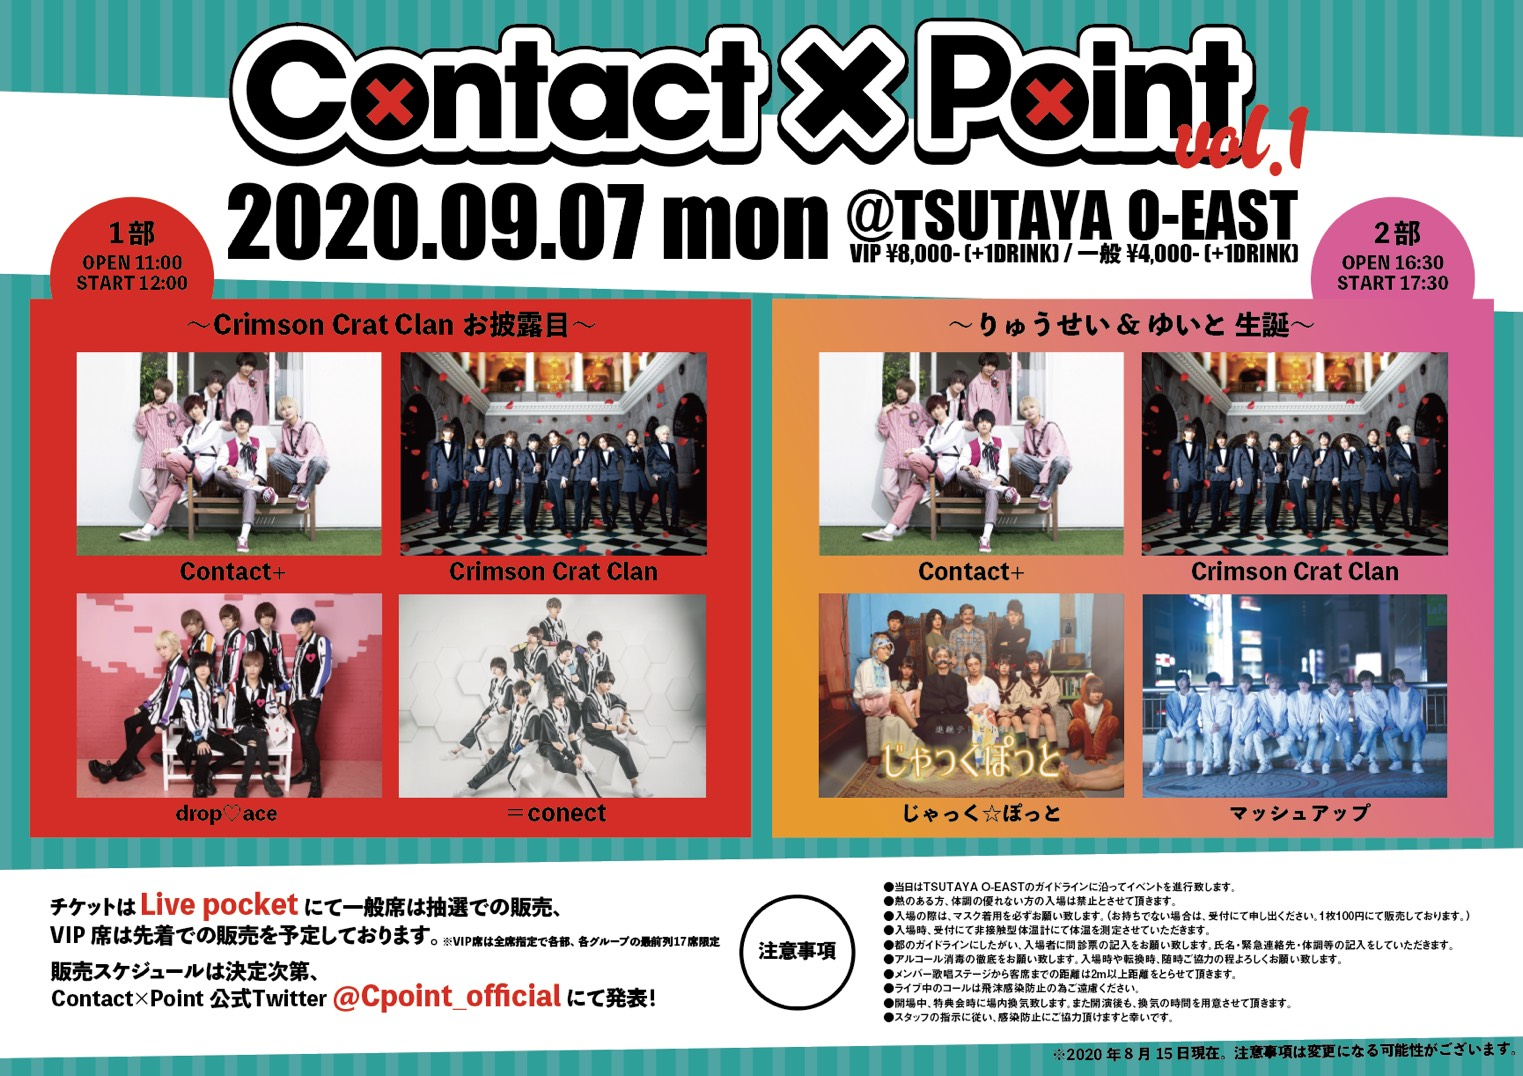 Contact+主催「Contact×Point」Vol.1 先着販売